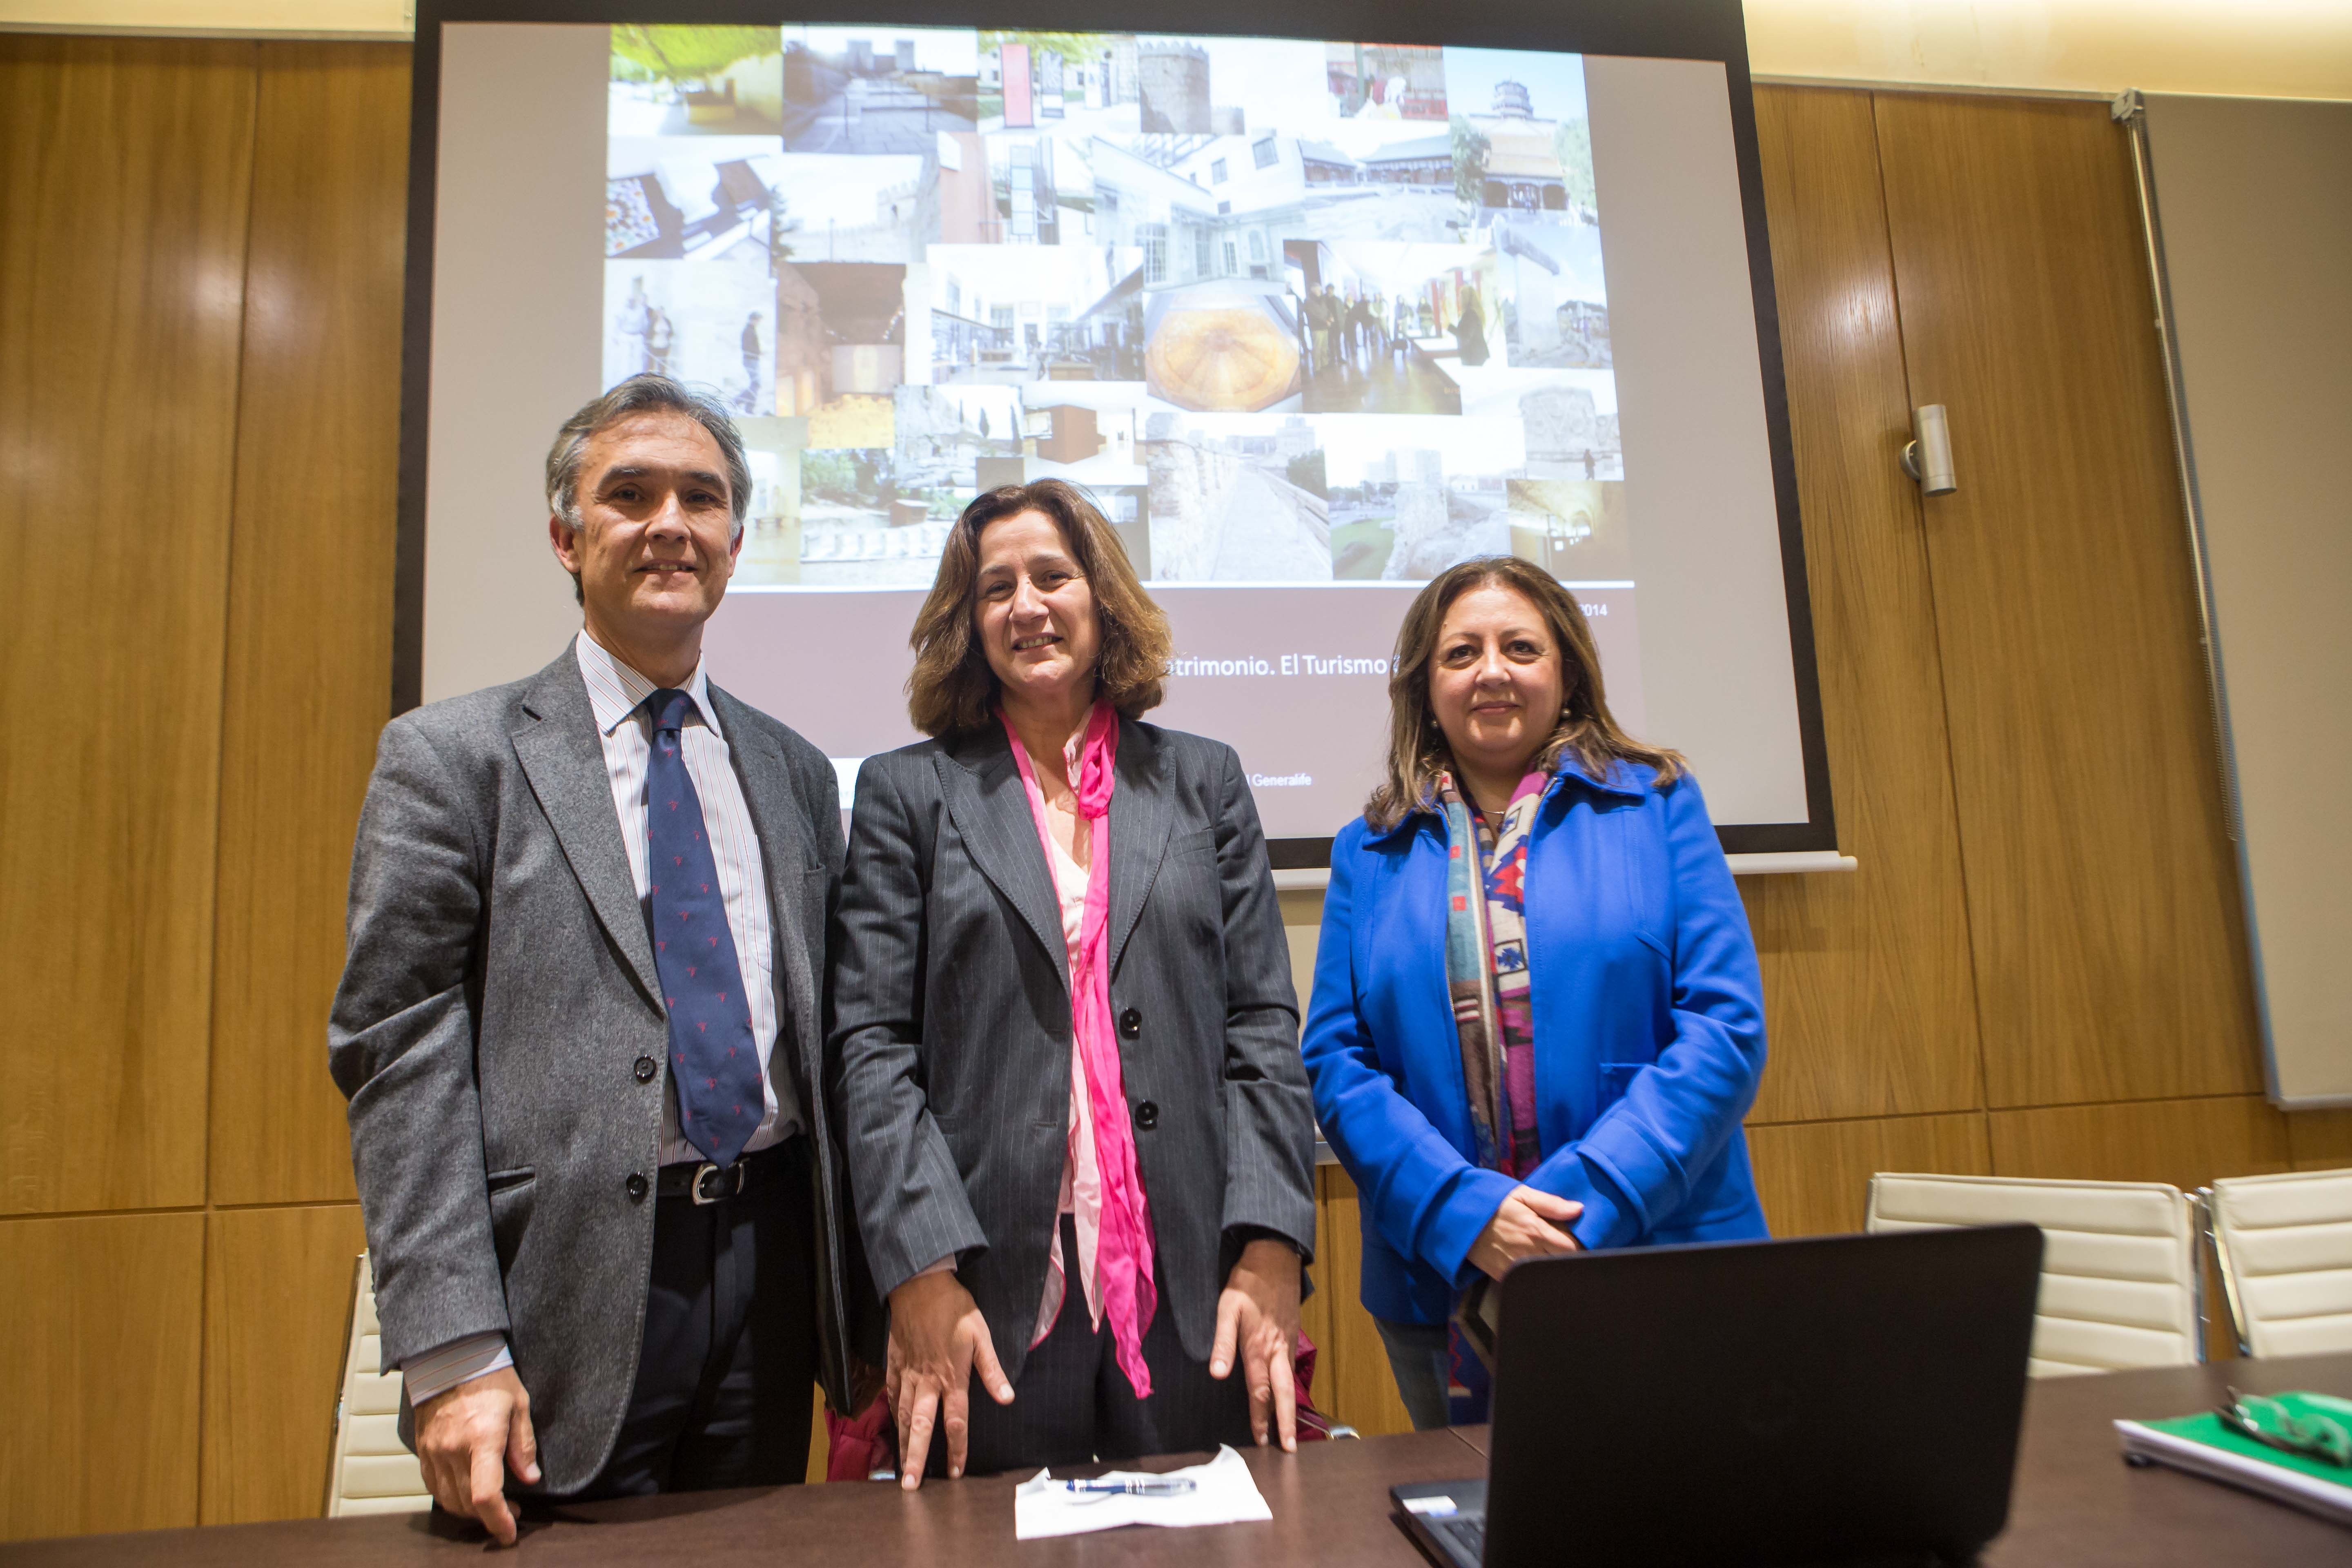 """Mass tourism has serious consequences for heritage conservation"" according to the Director of the Alhambra and Generalife, who this morning opened the MA in Museology at the UGR"